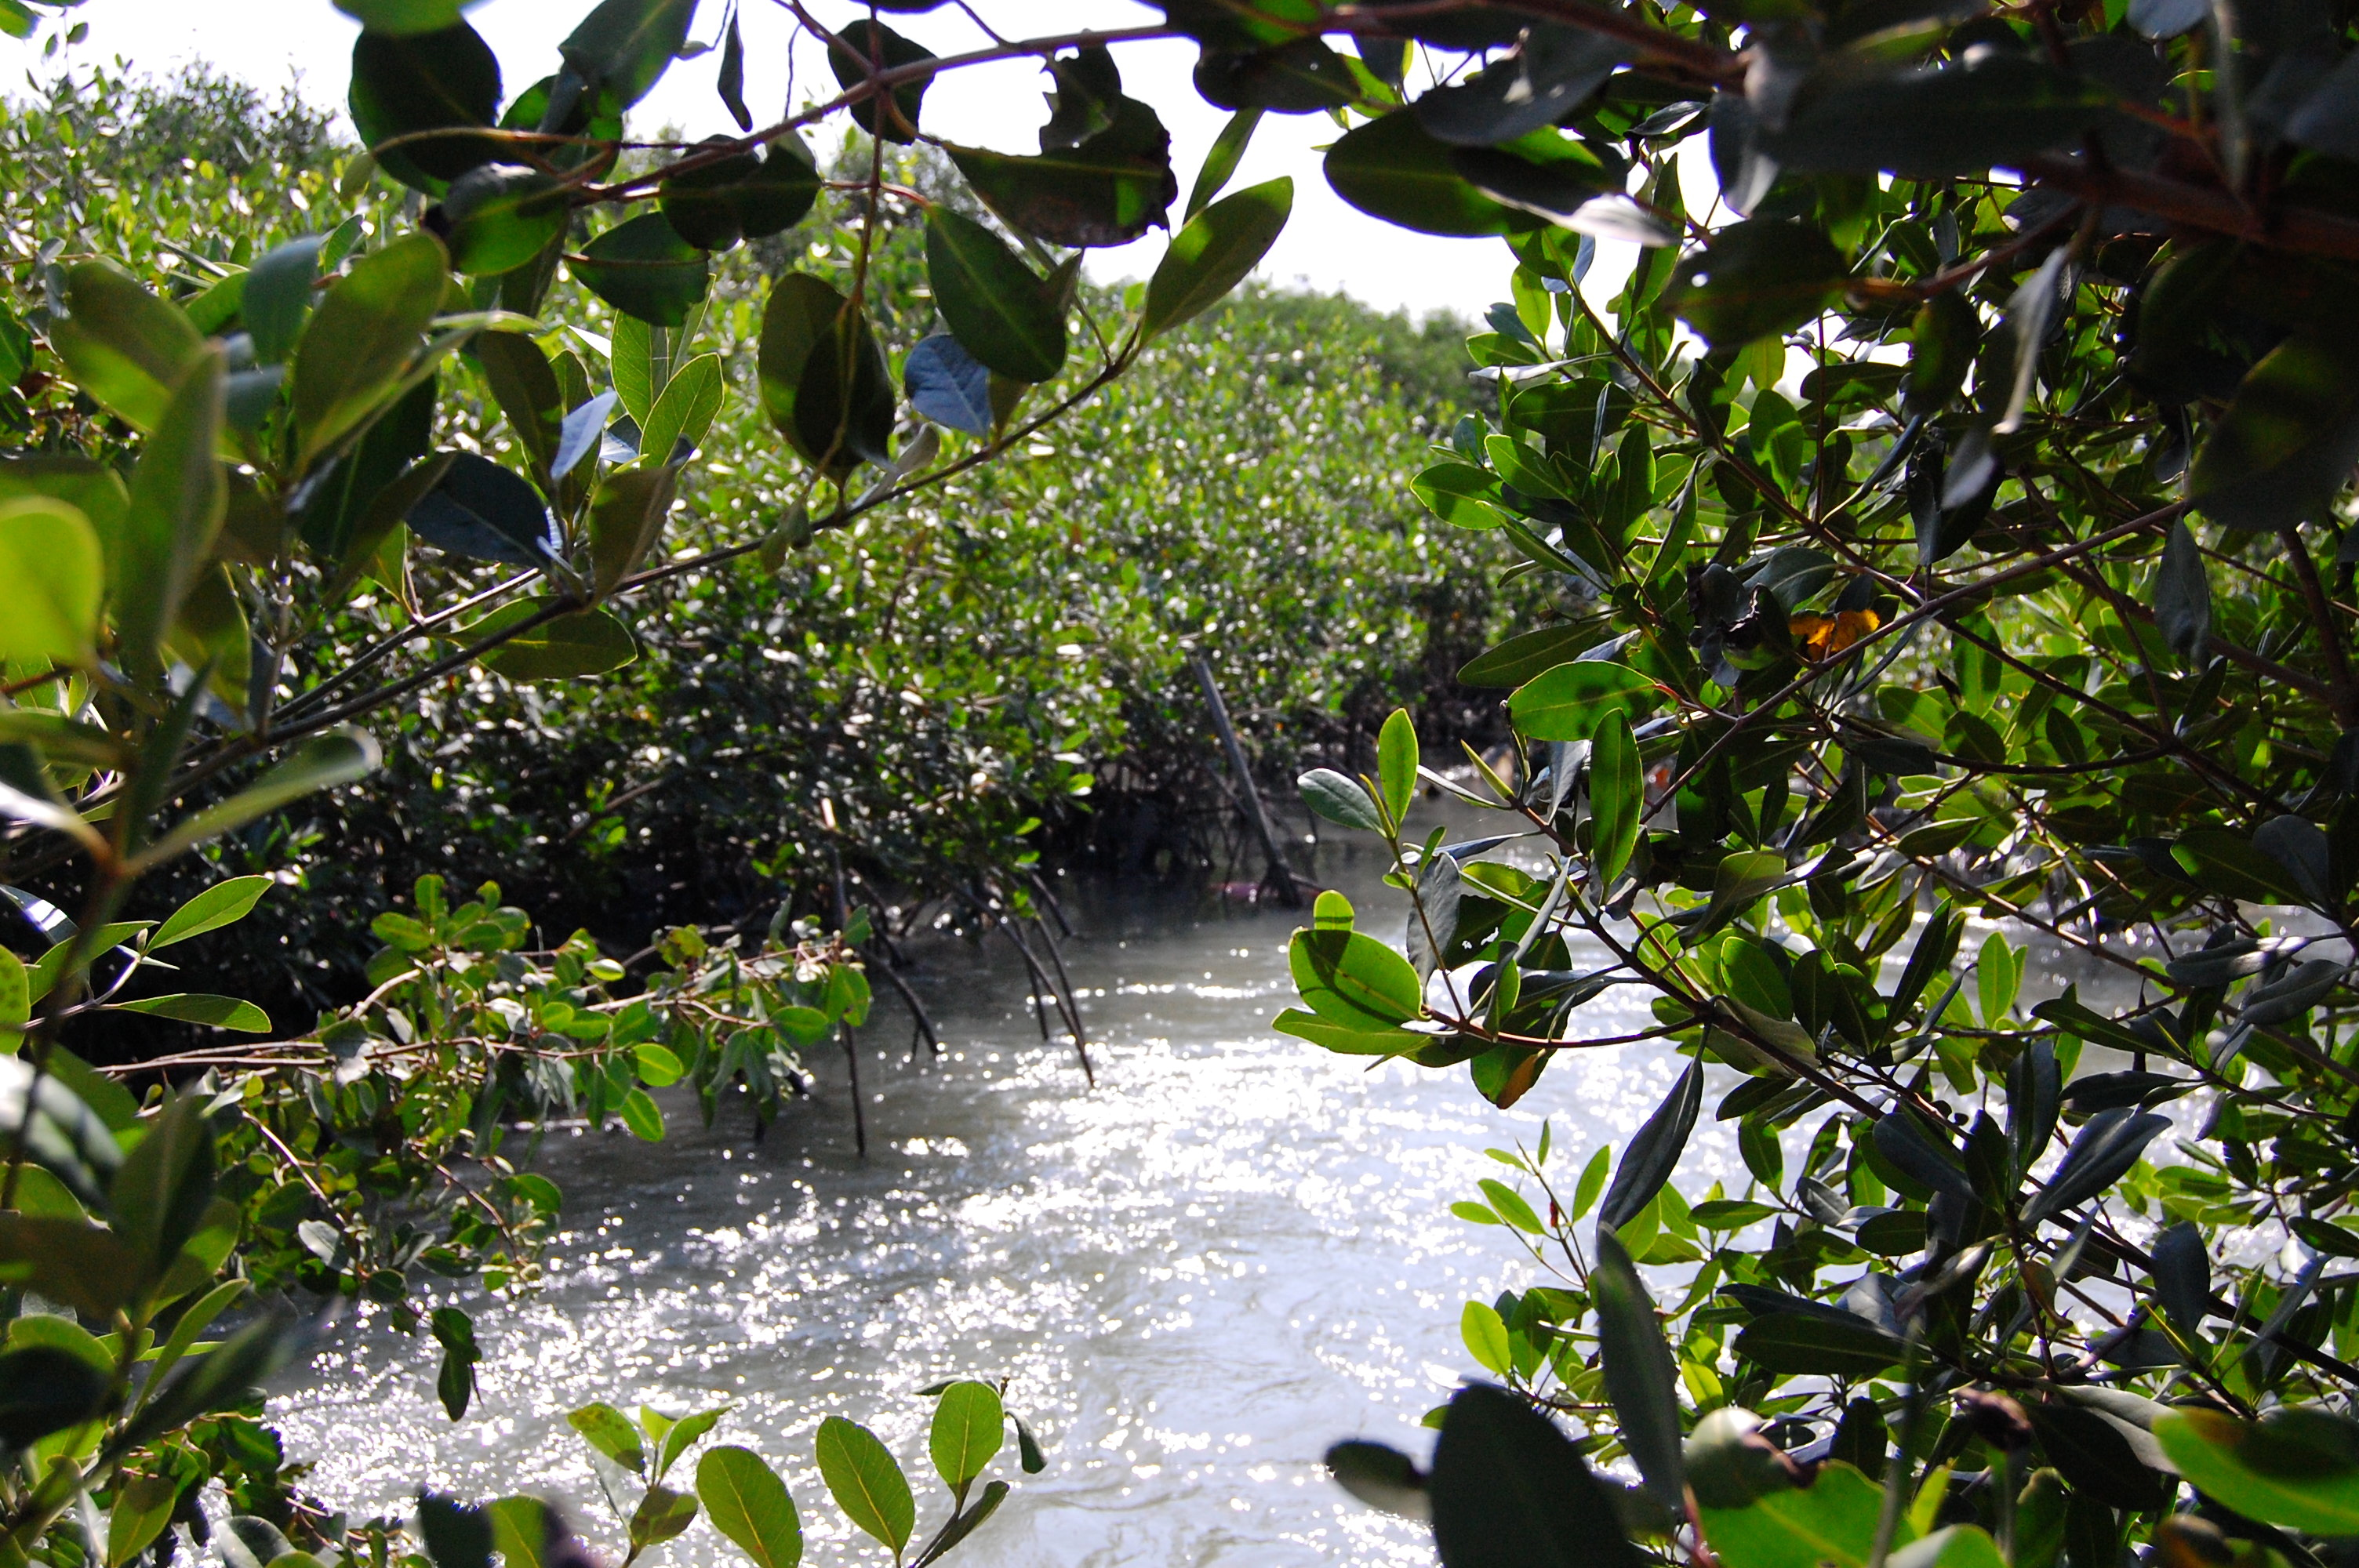 A relatively clean mangrove along the shores of Guanabara Bay